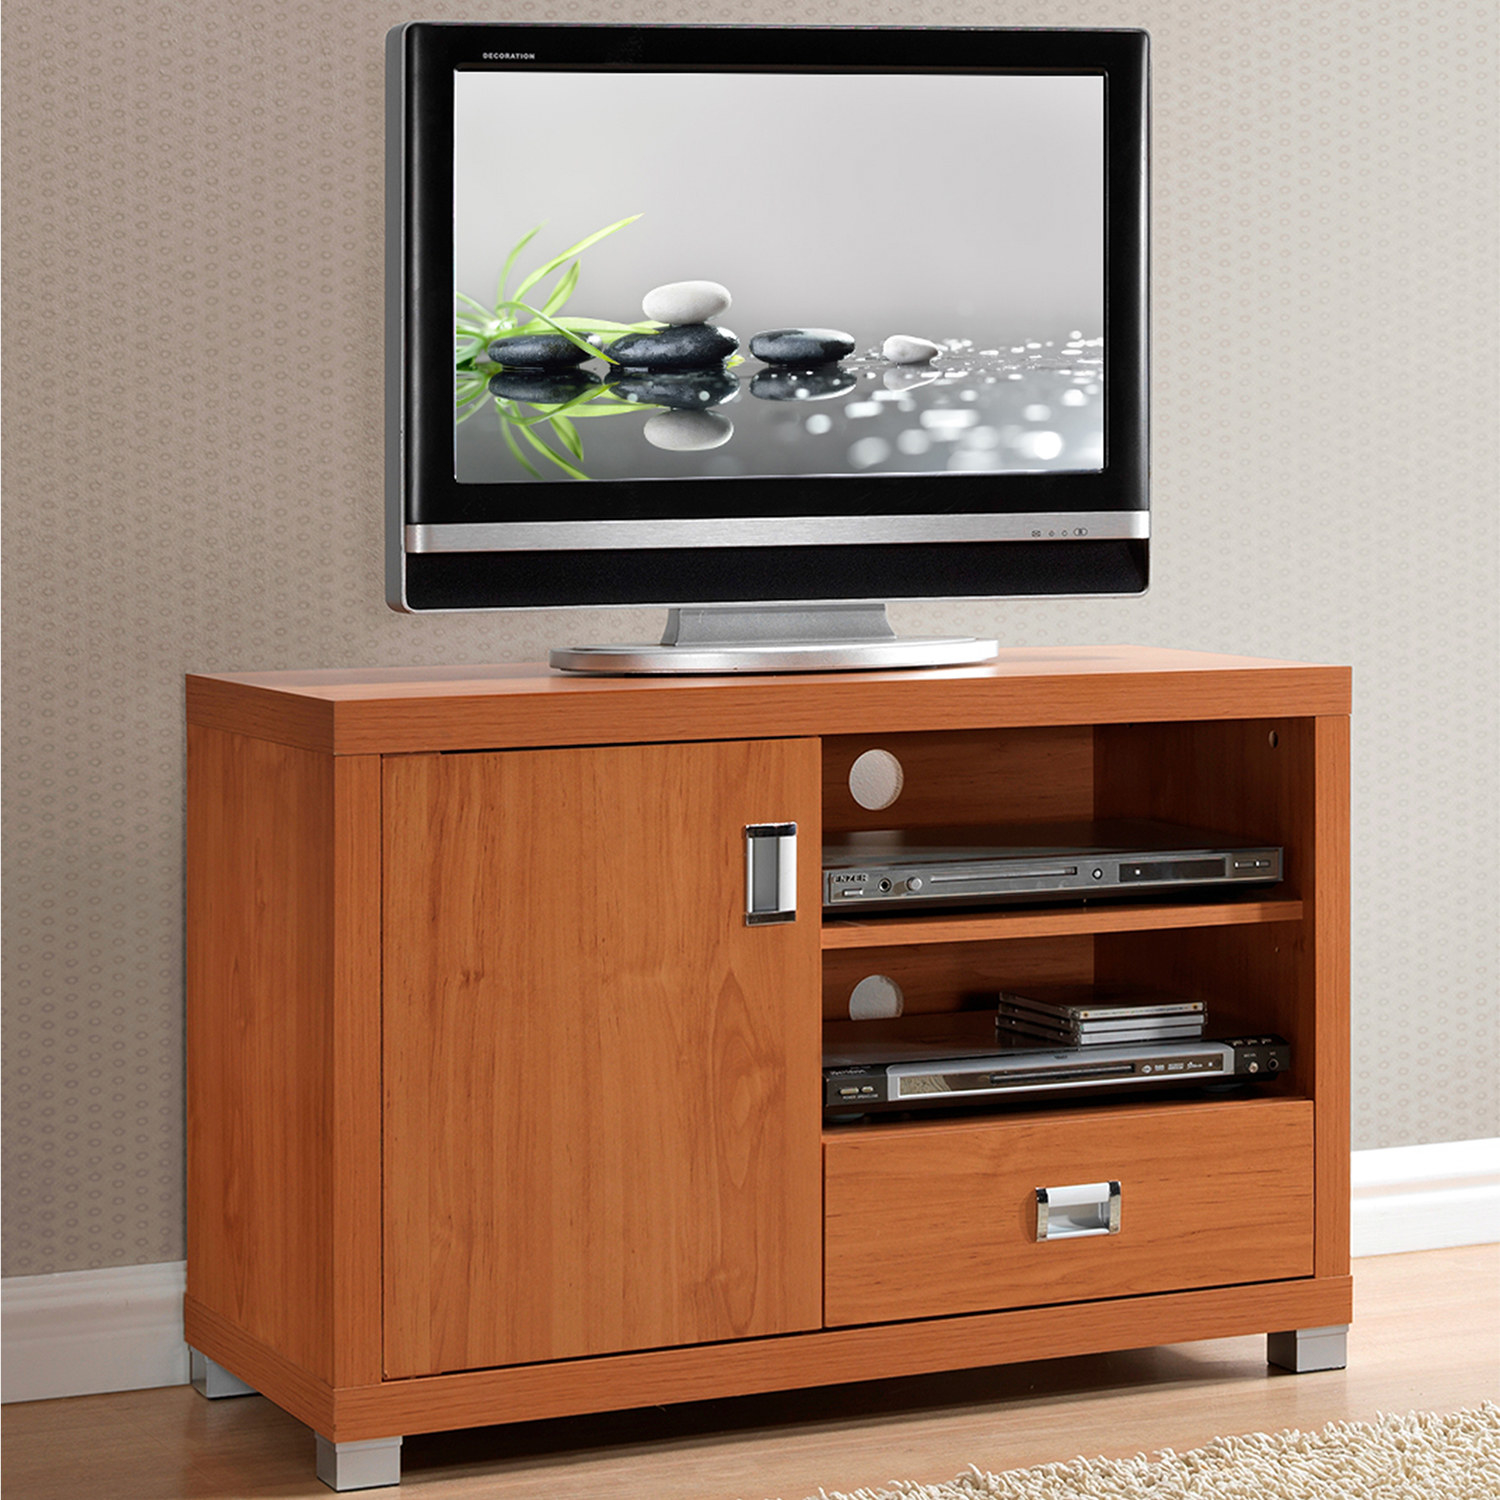 The brown TV  stand